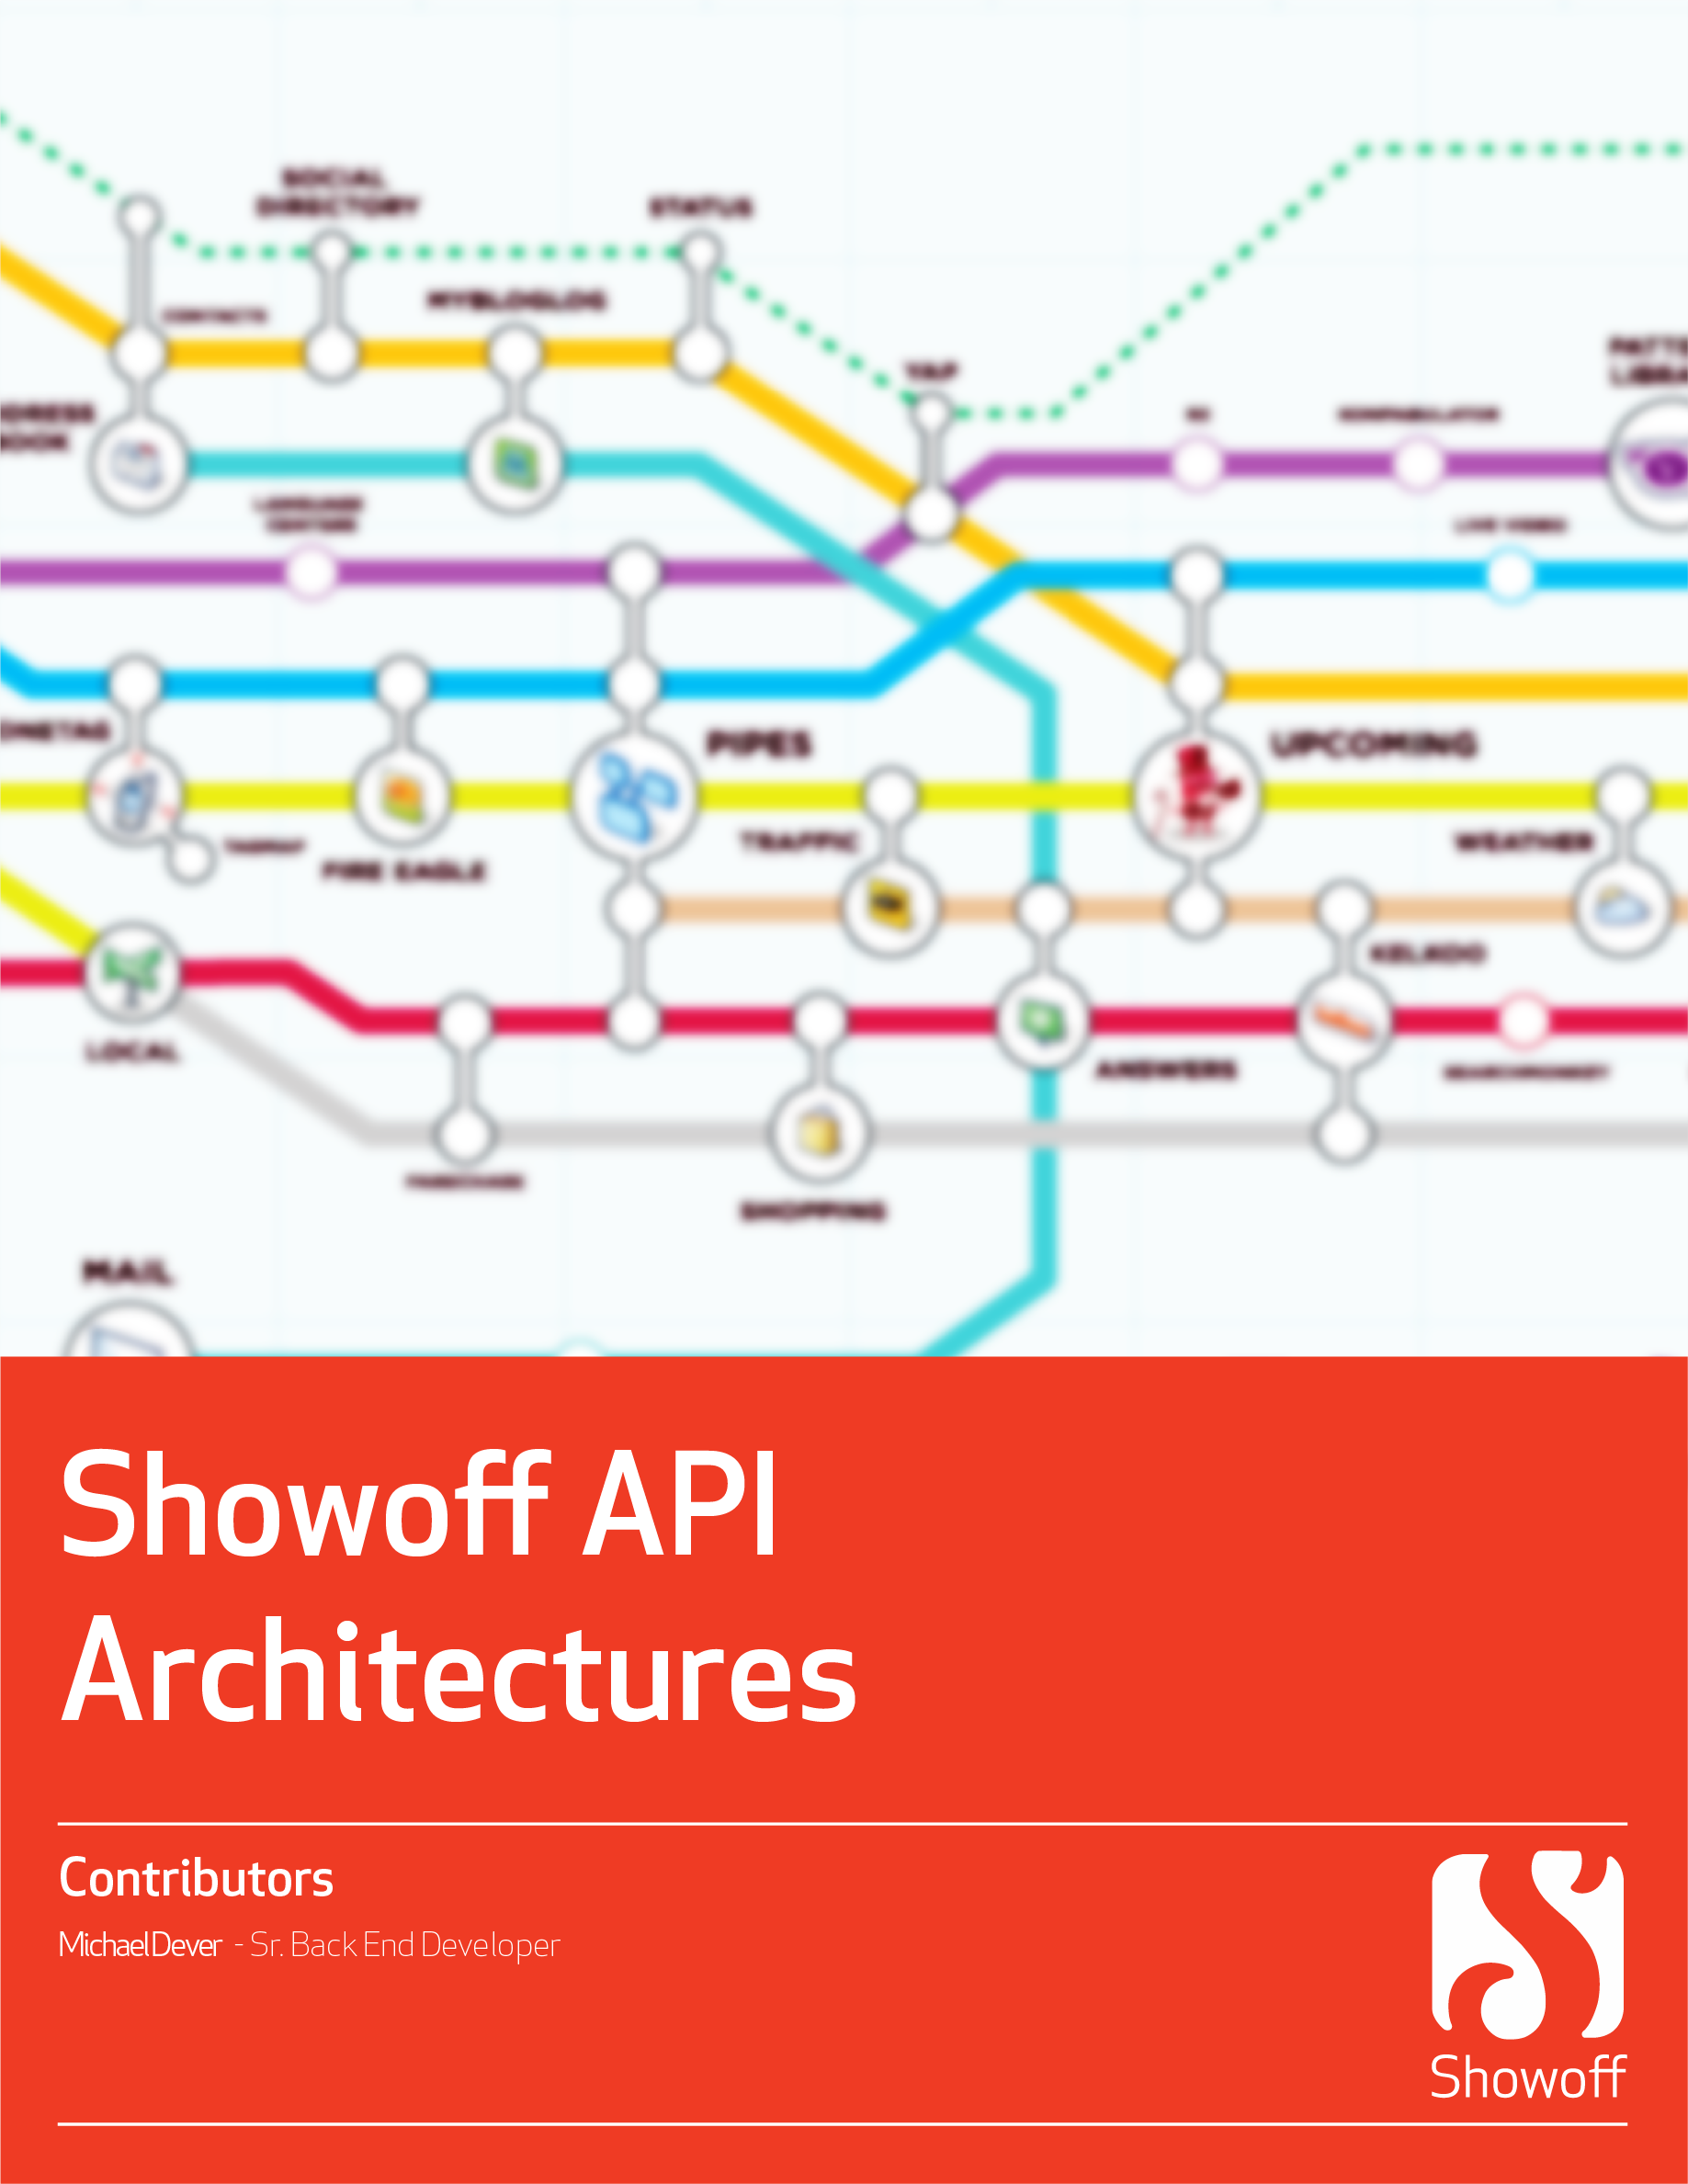 Showoff API Architectures Illustration